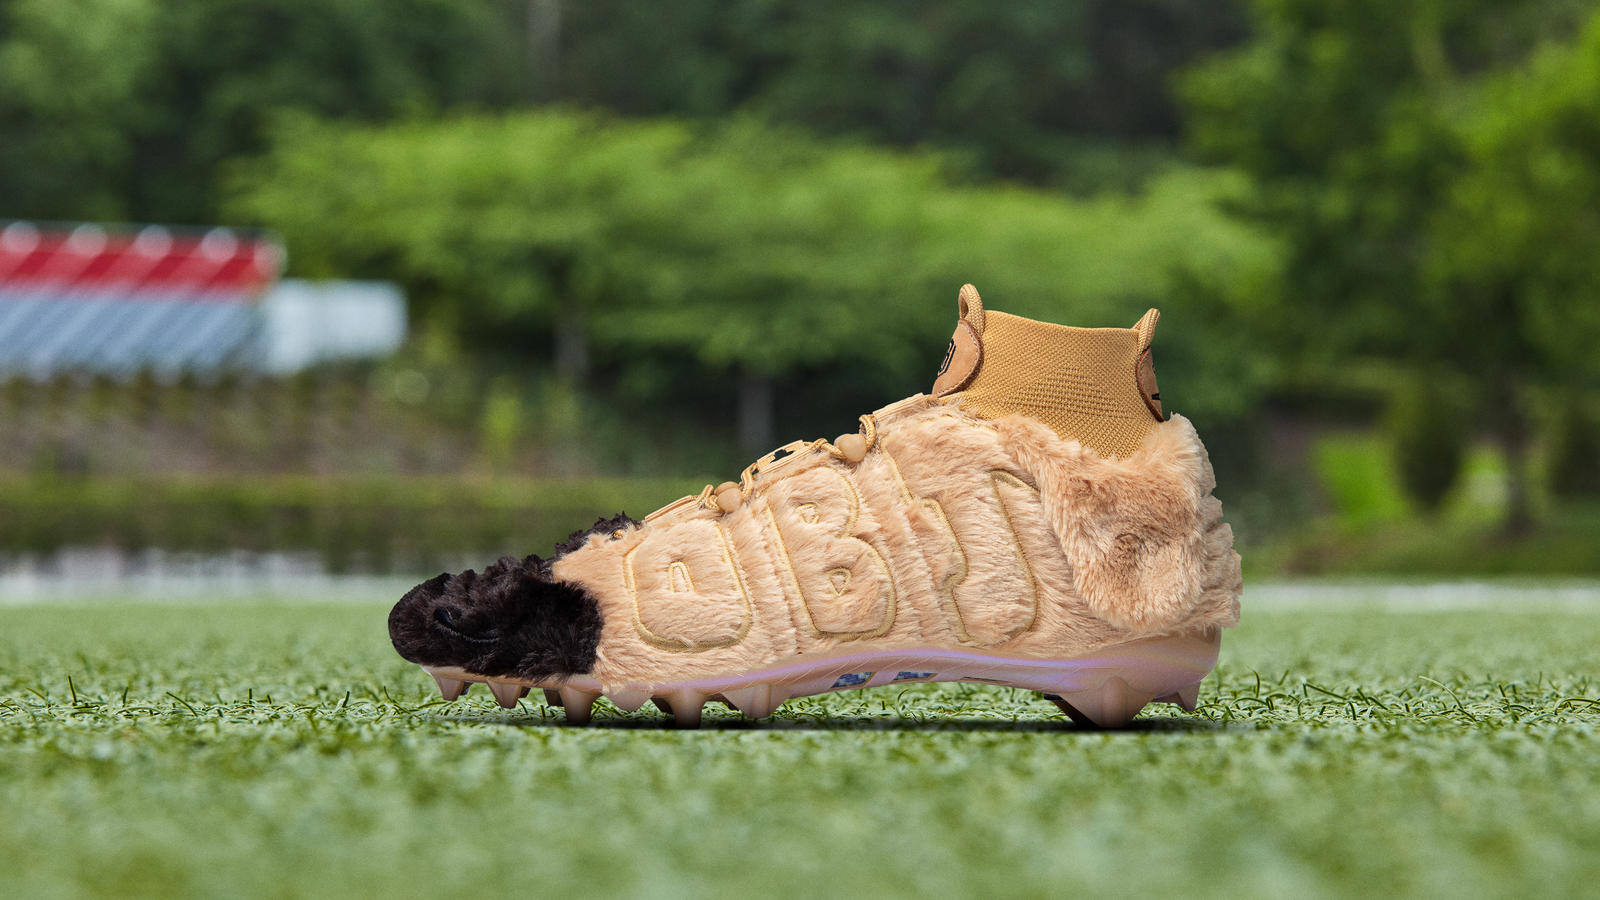 Nike Odell Beckham Jr. Pregame Cleats 2019 Season Week 14 0